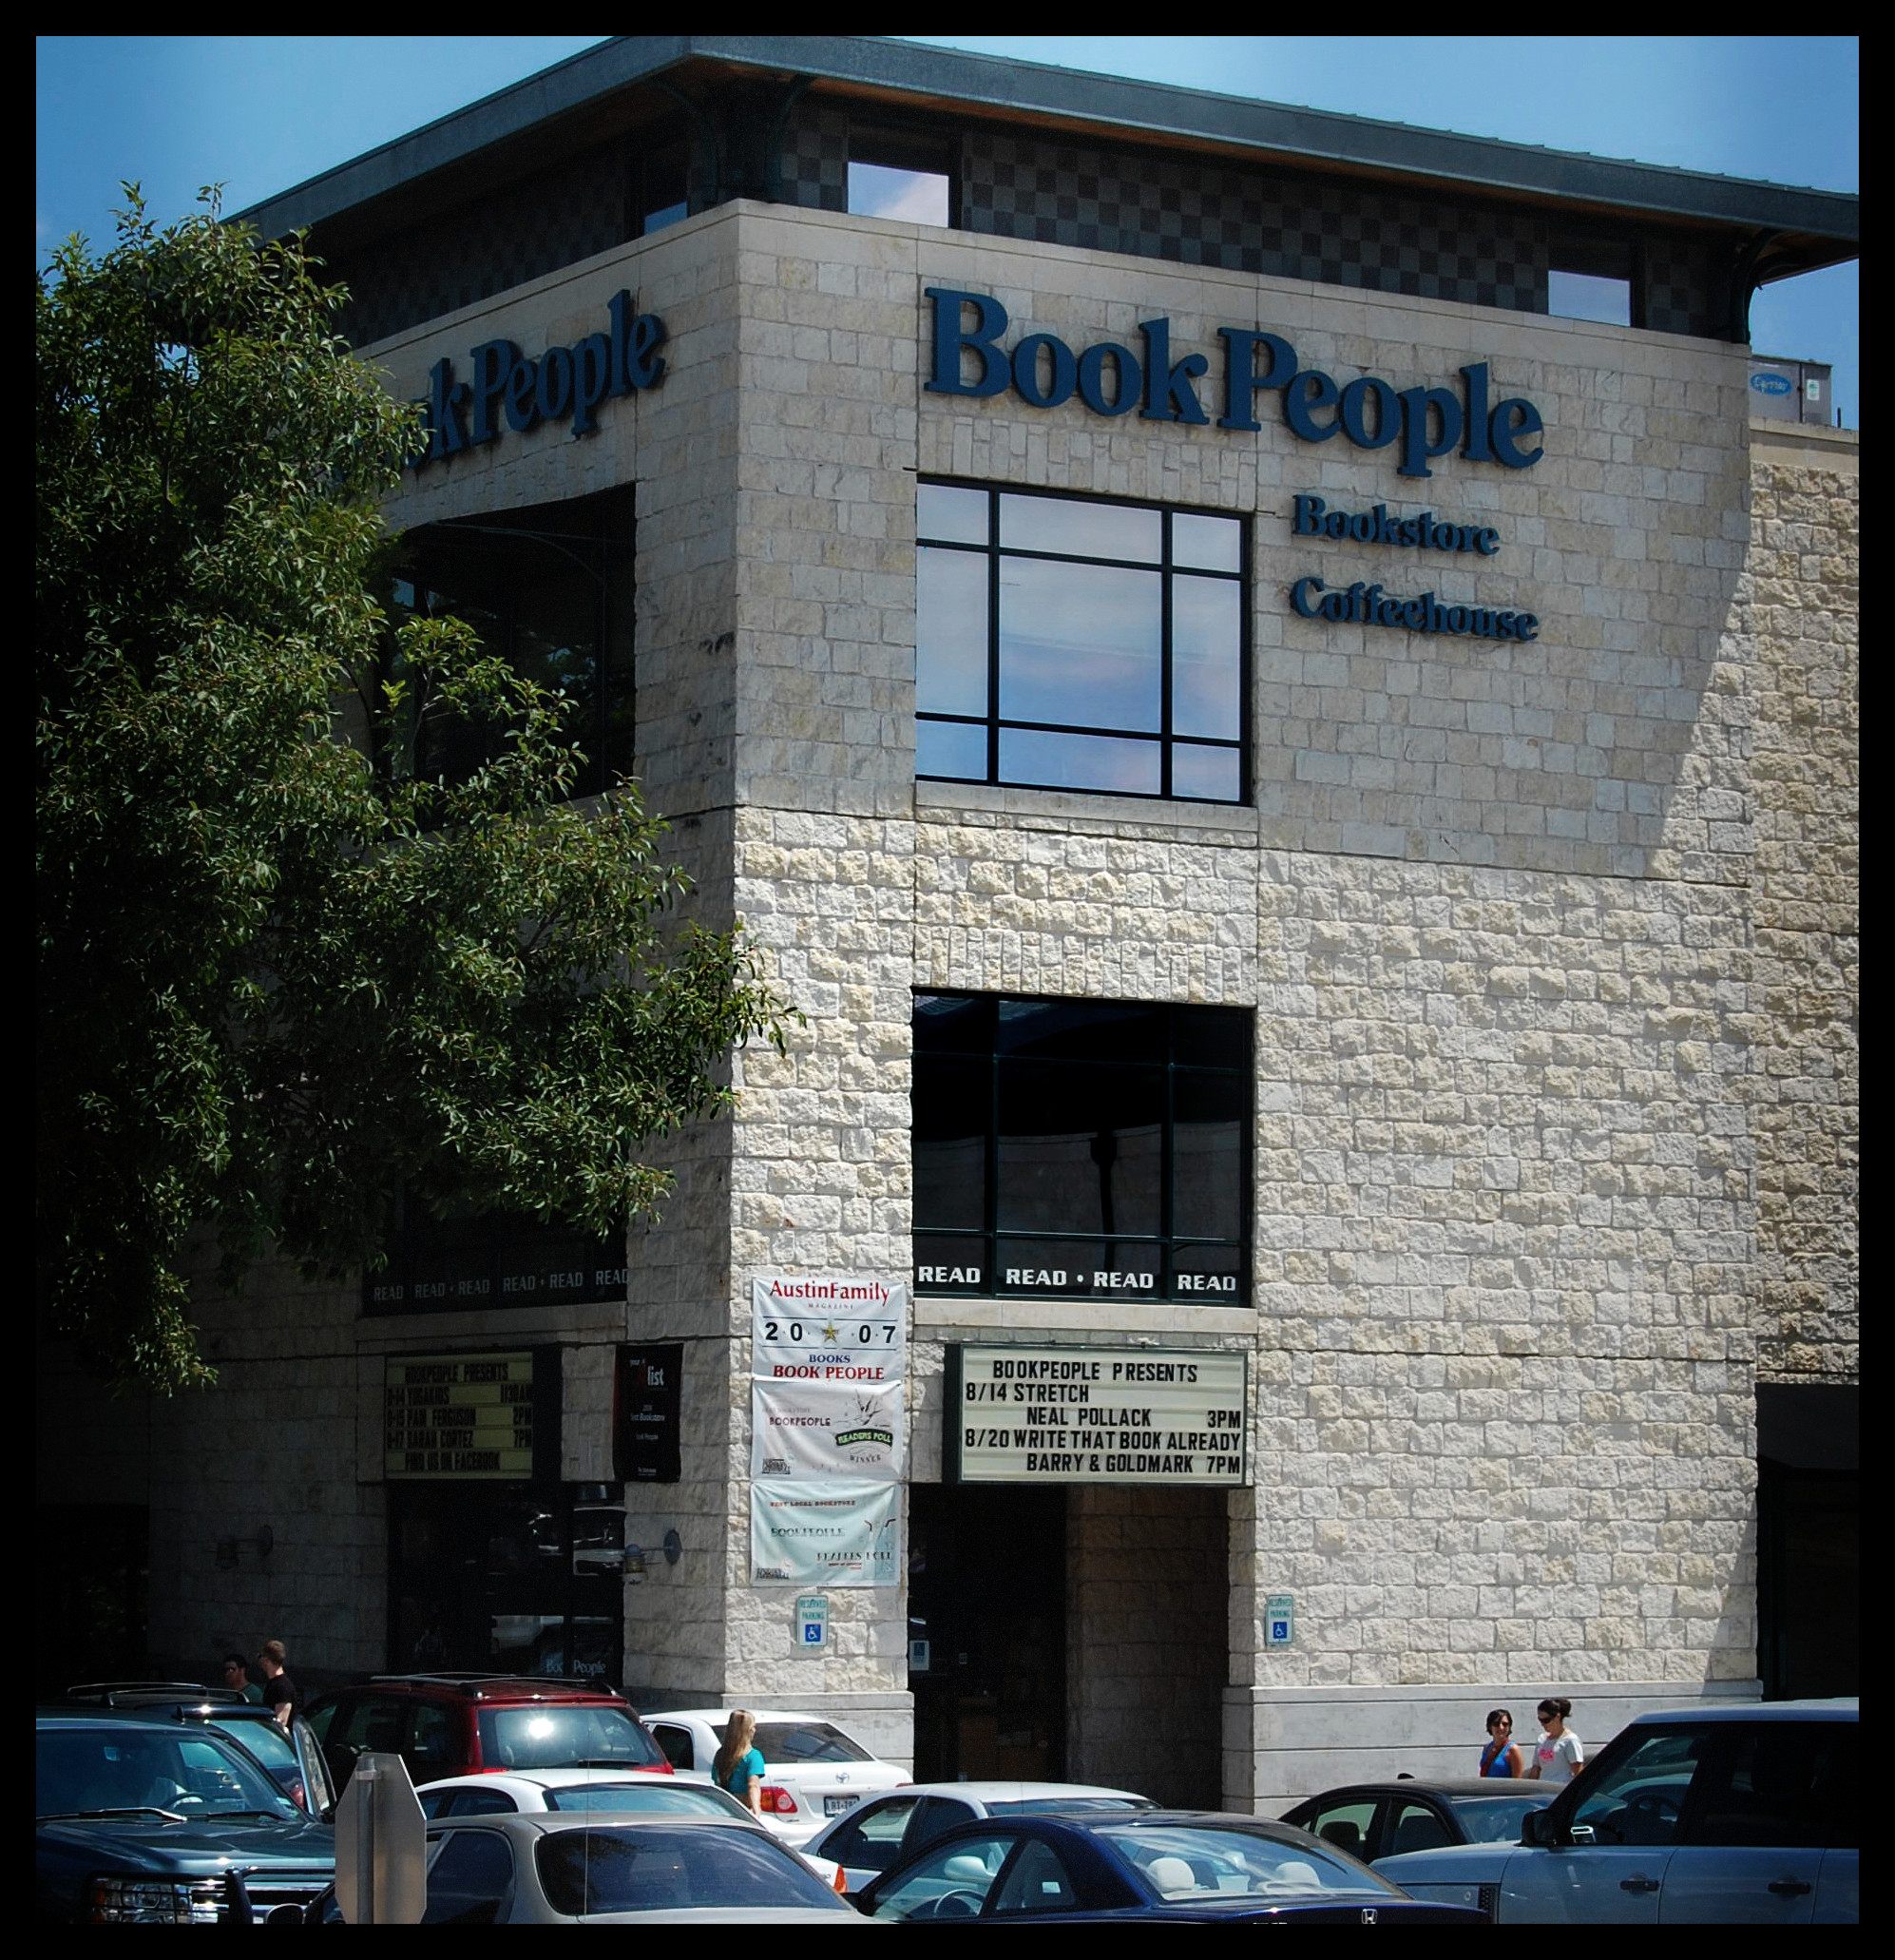 book people building